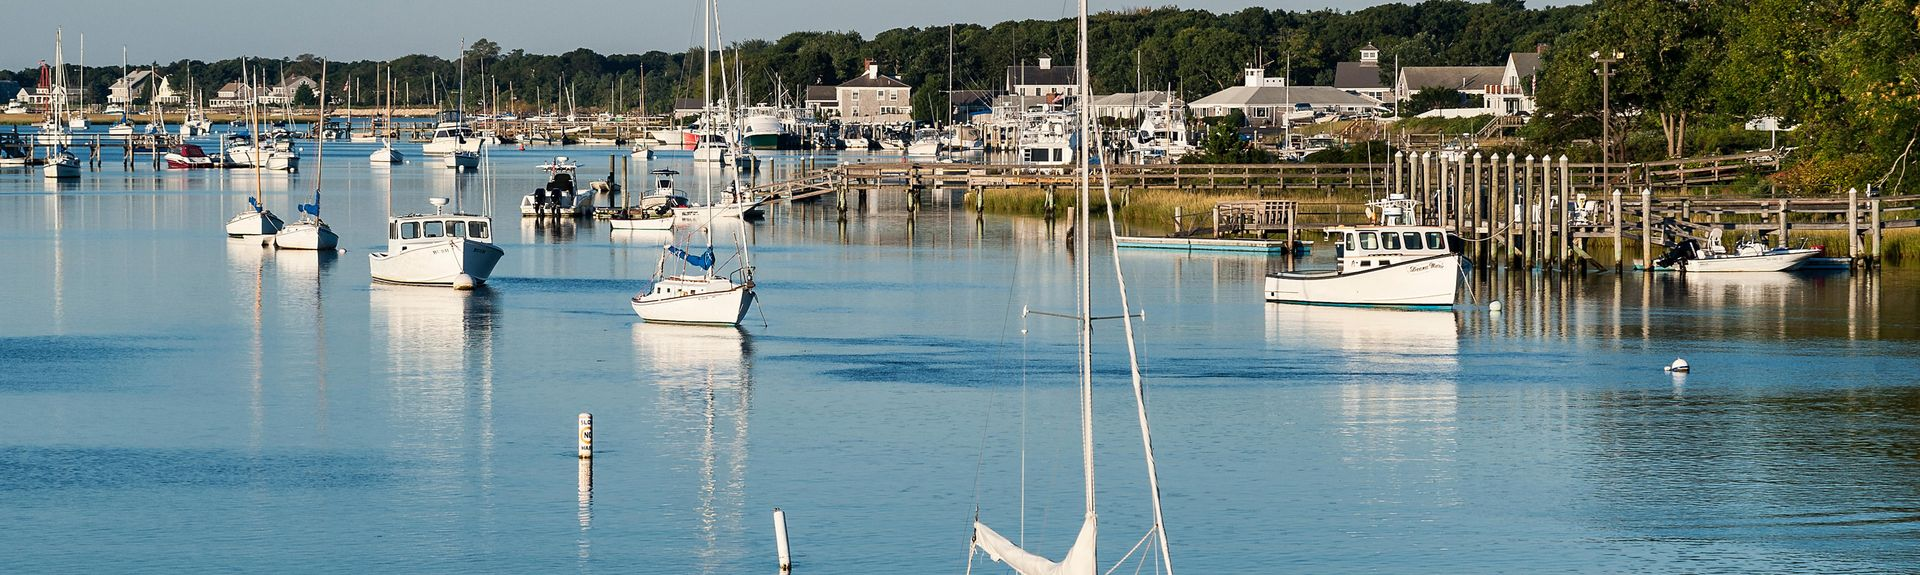 South Yarmouth, Yarmouth, Massachusetts, Estados Unidos